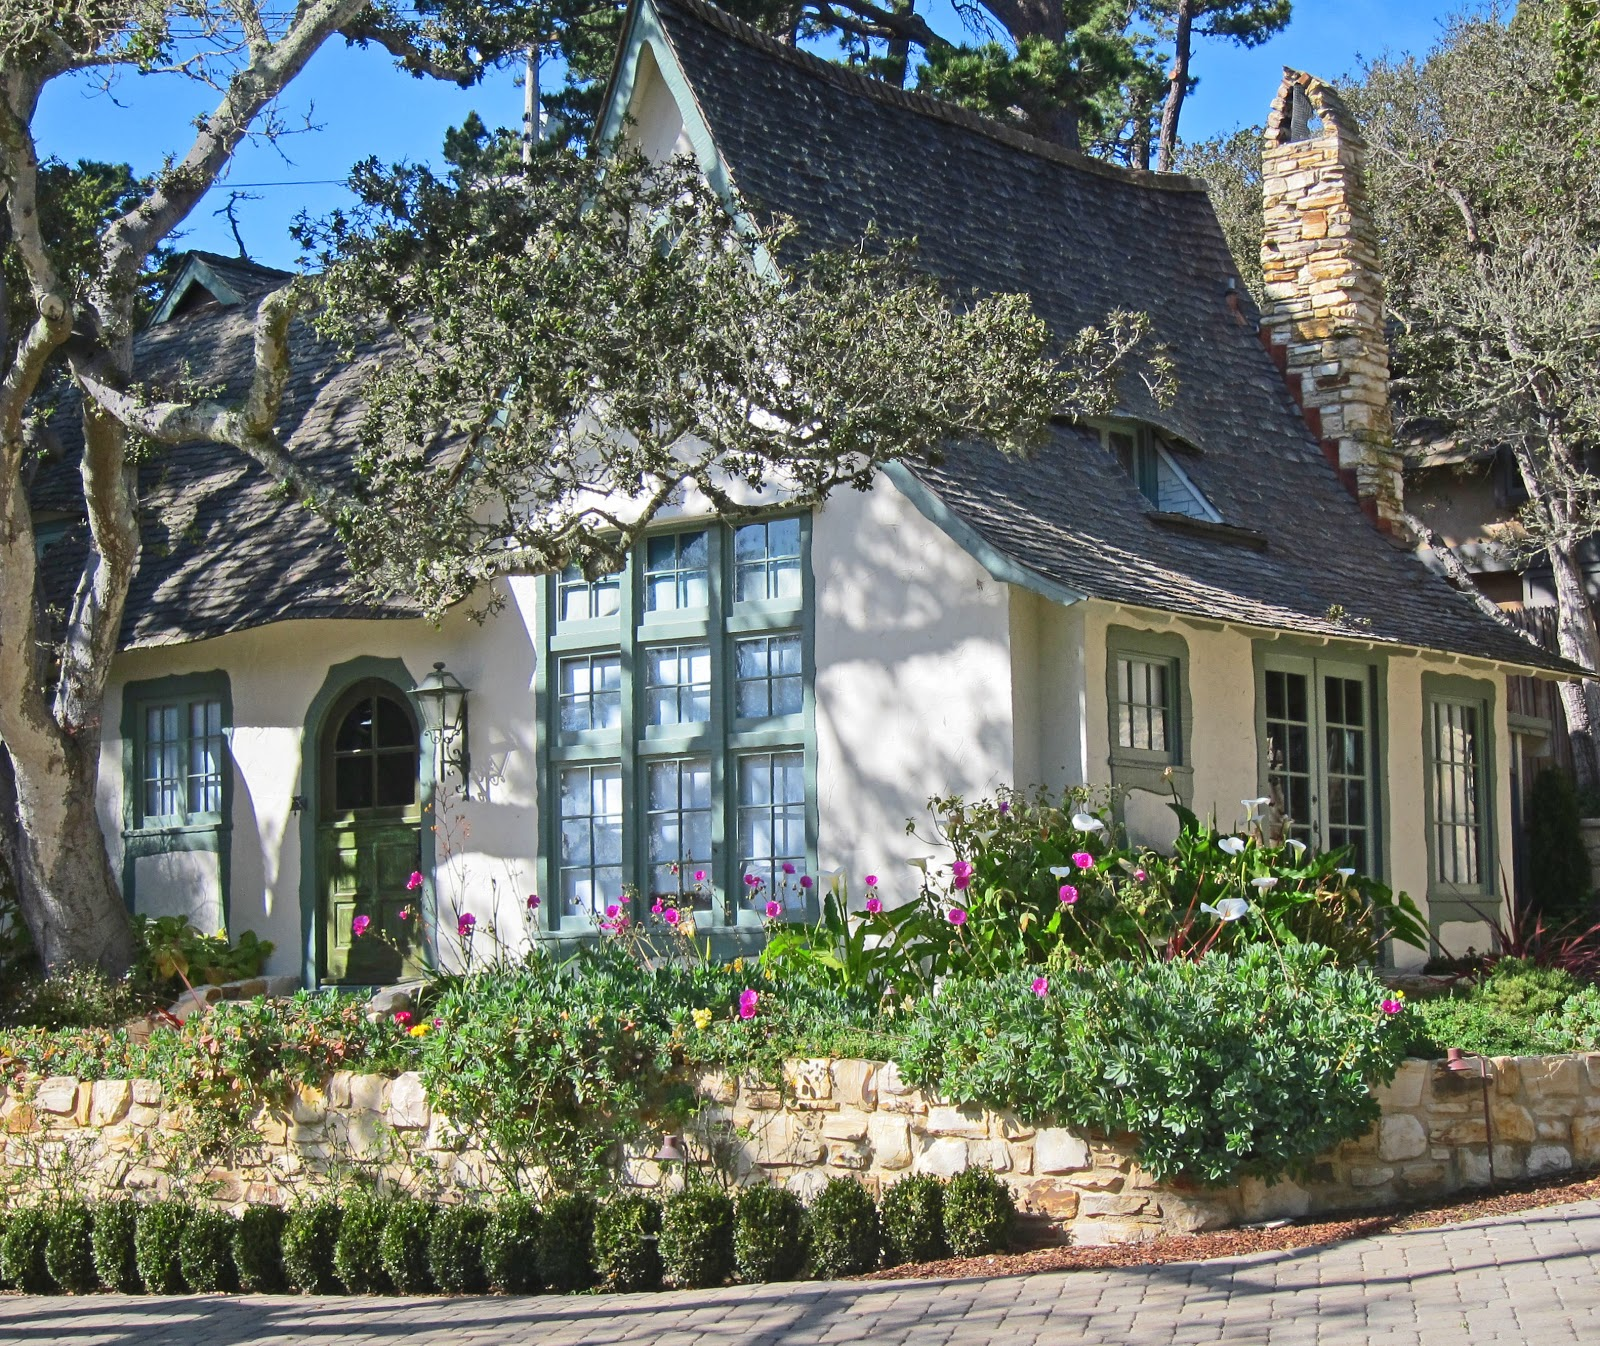 Fairy Tale Cottages Of Hugh Comstock Obers Now Known As